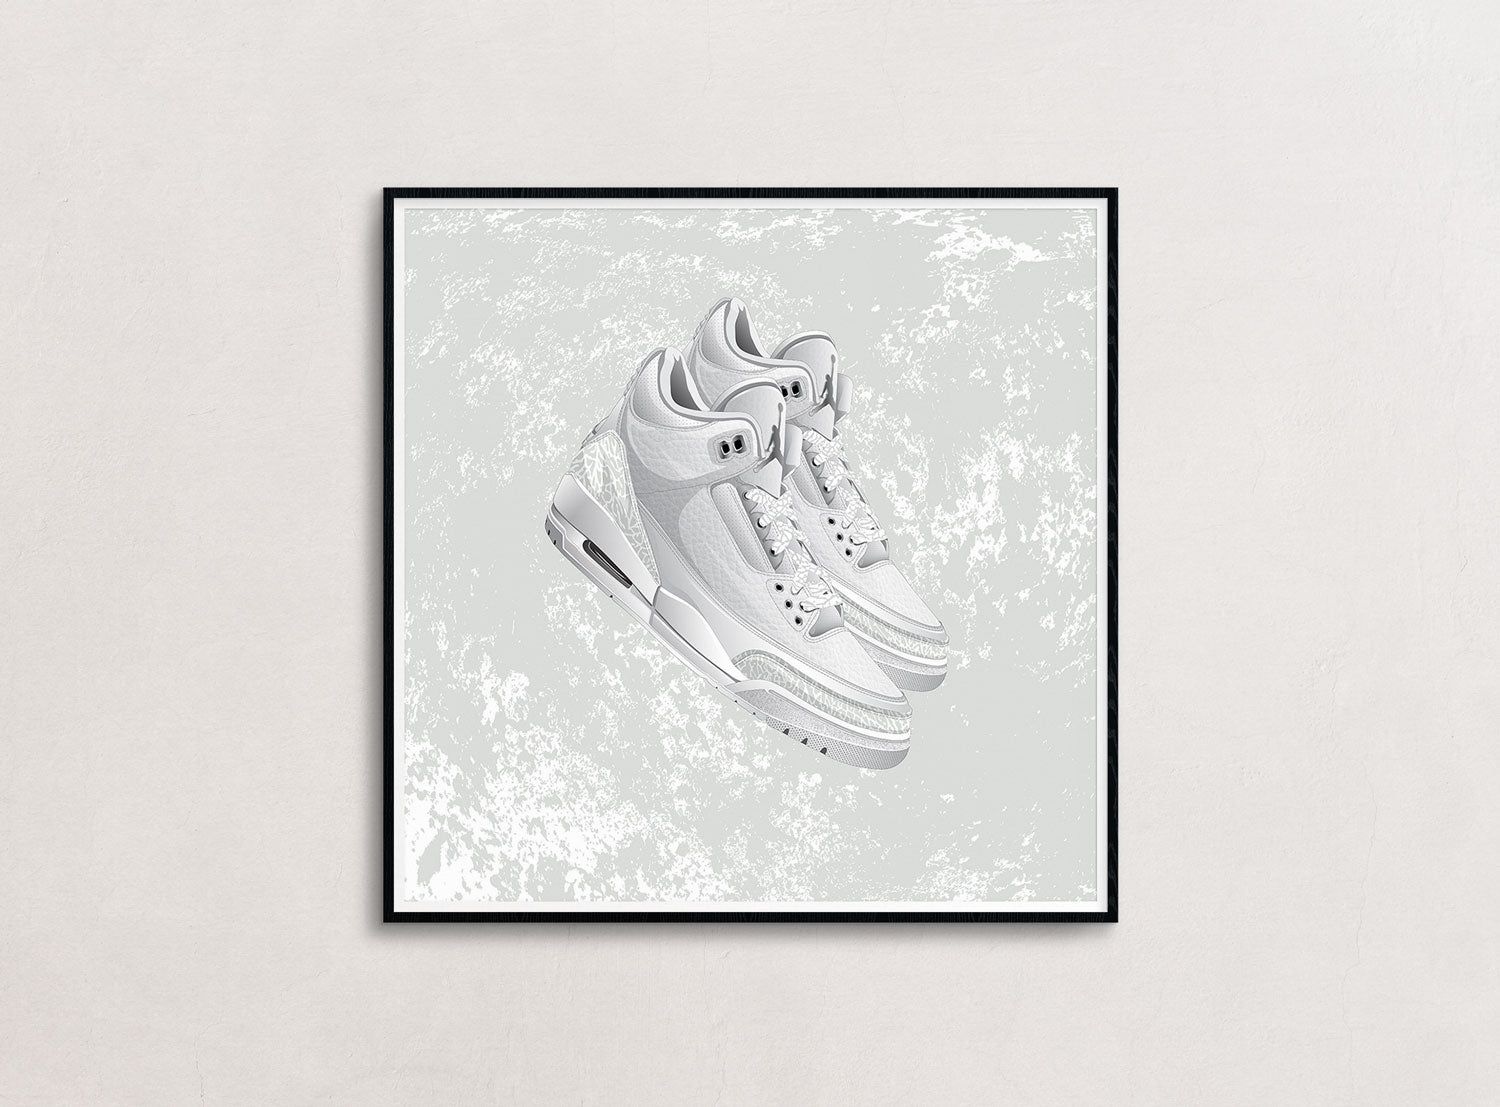 A framed large size print of the Air Jordan 3